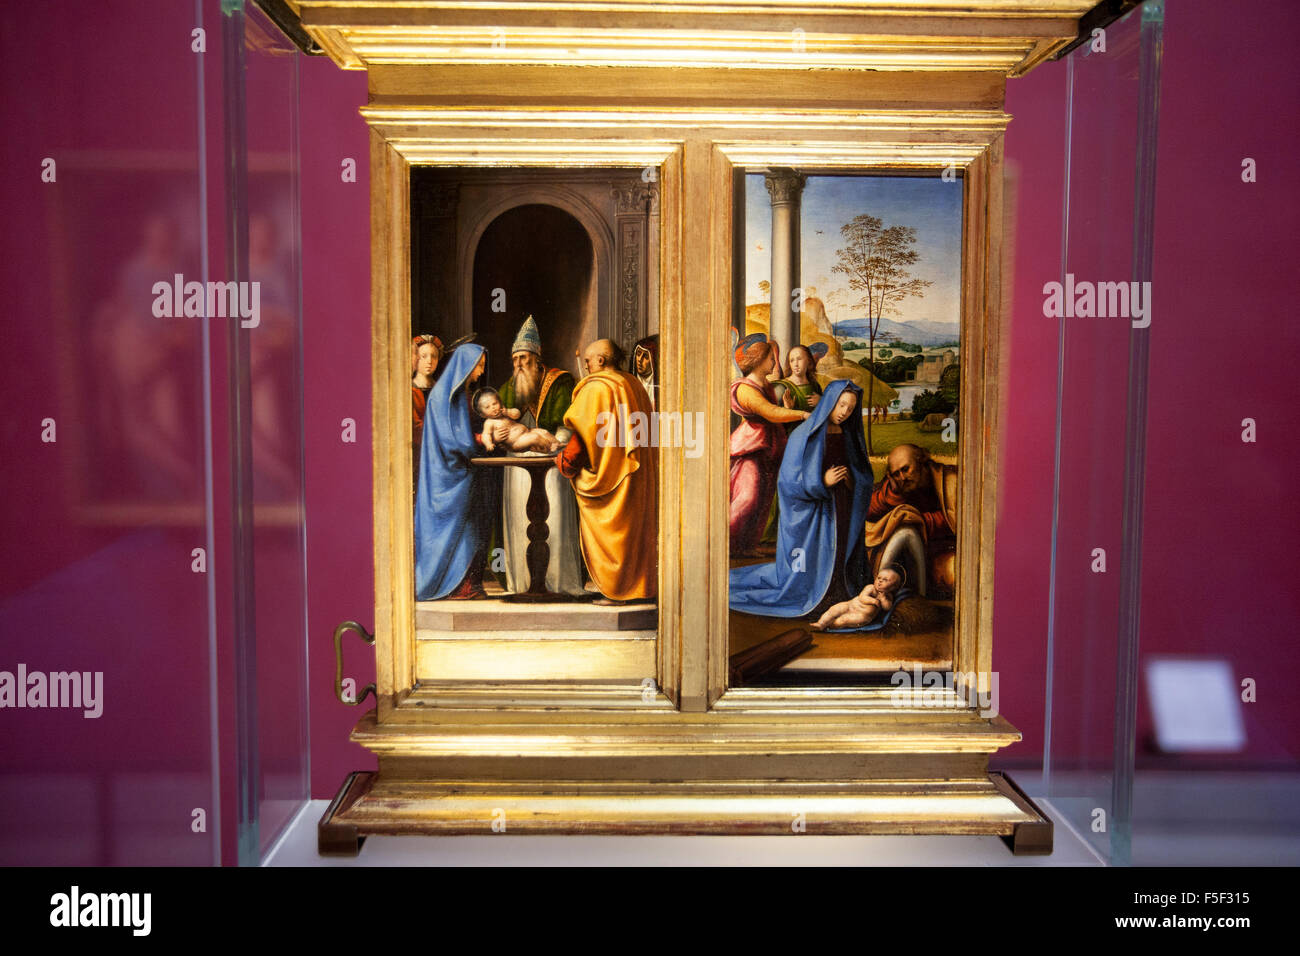 The Circumcision and the Nativity c1500  by  Fra' Bartolommeo  in the Uffizi Gallery, Florence Italy - Stock Image